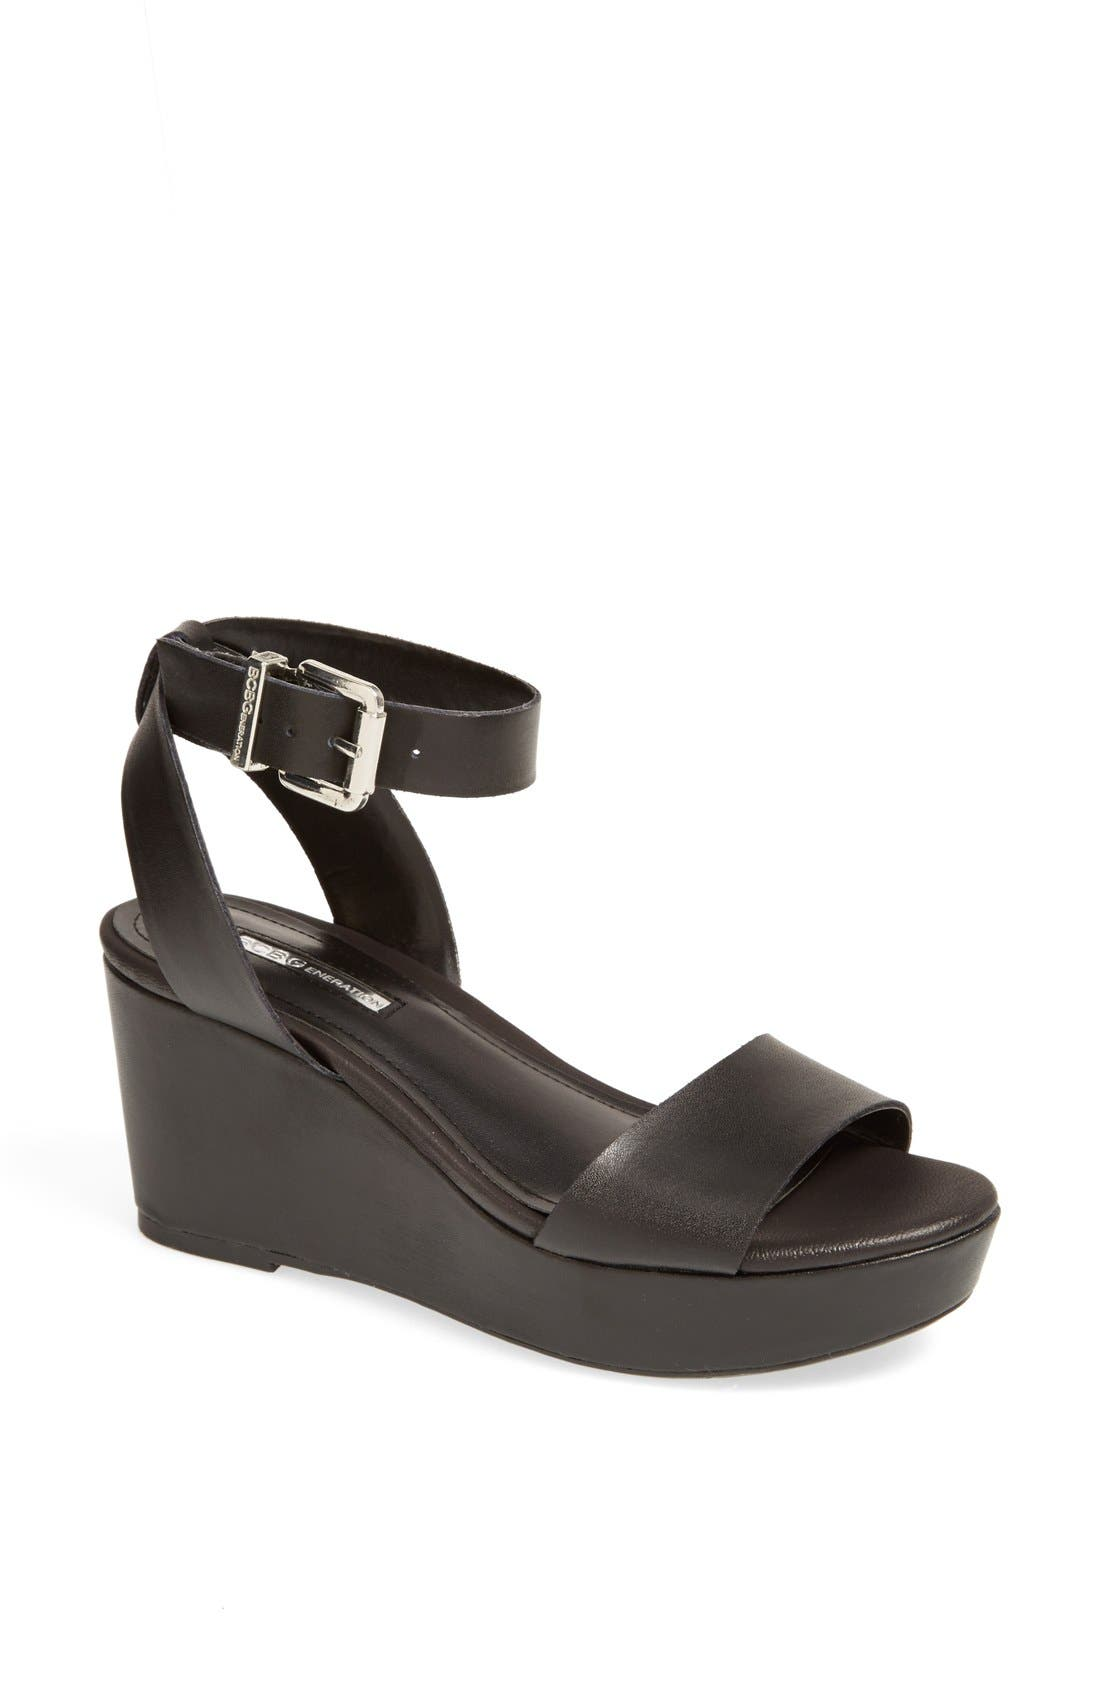 Main Image - BCBGeneration 'Fiji' Wedge Sandal